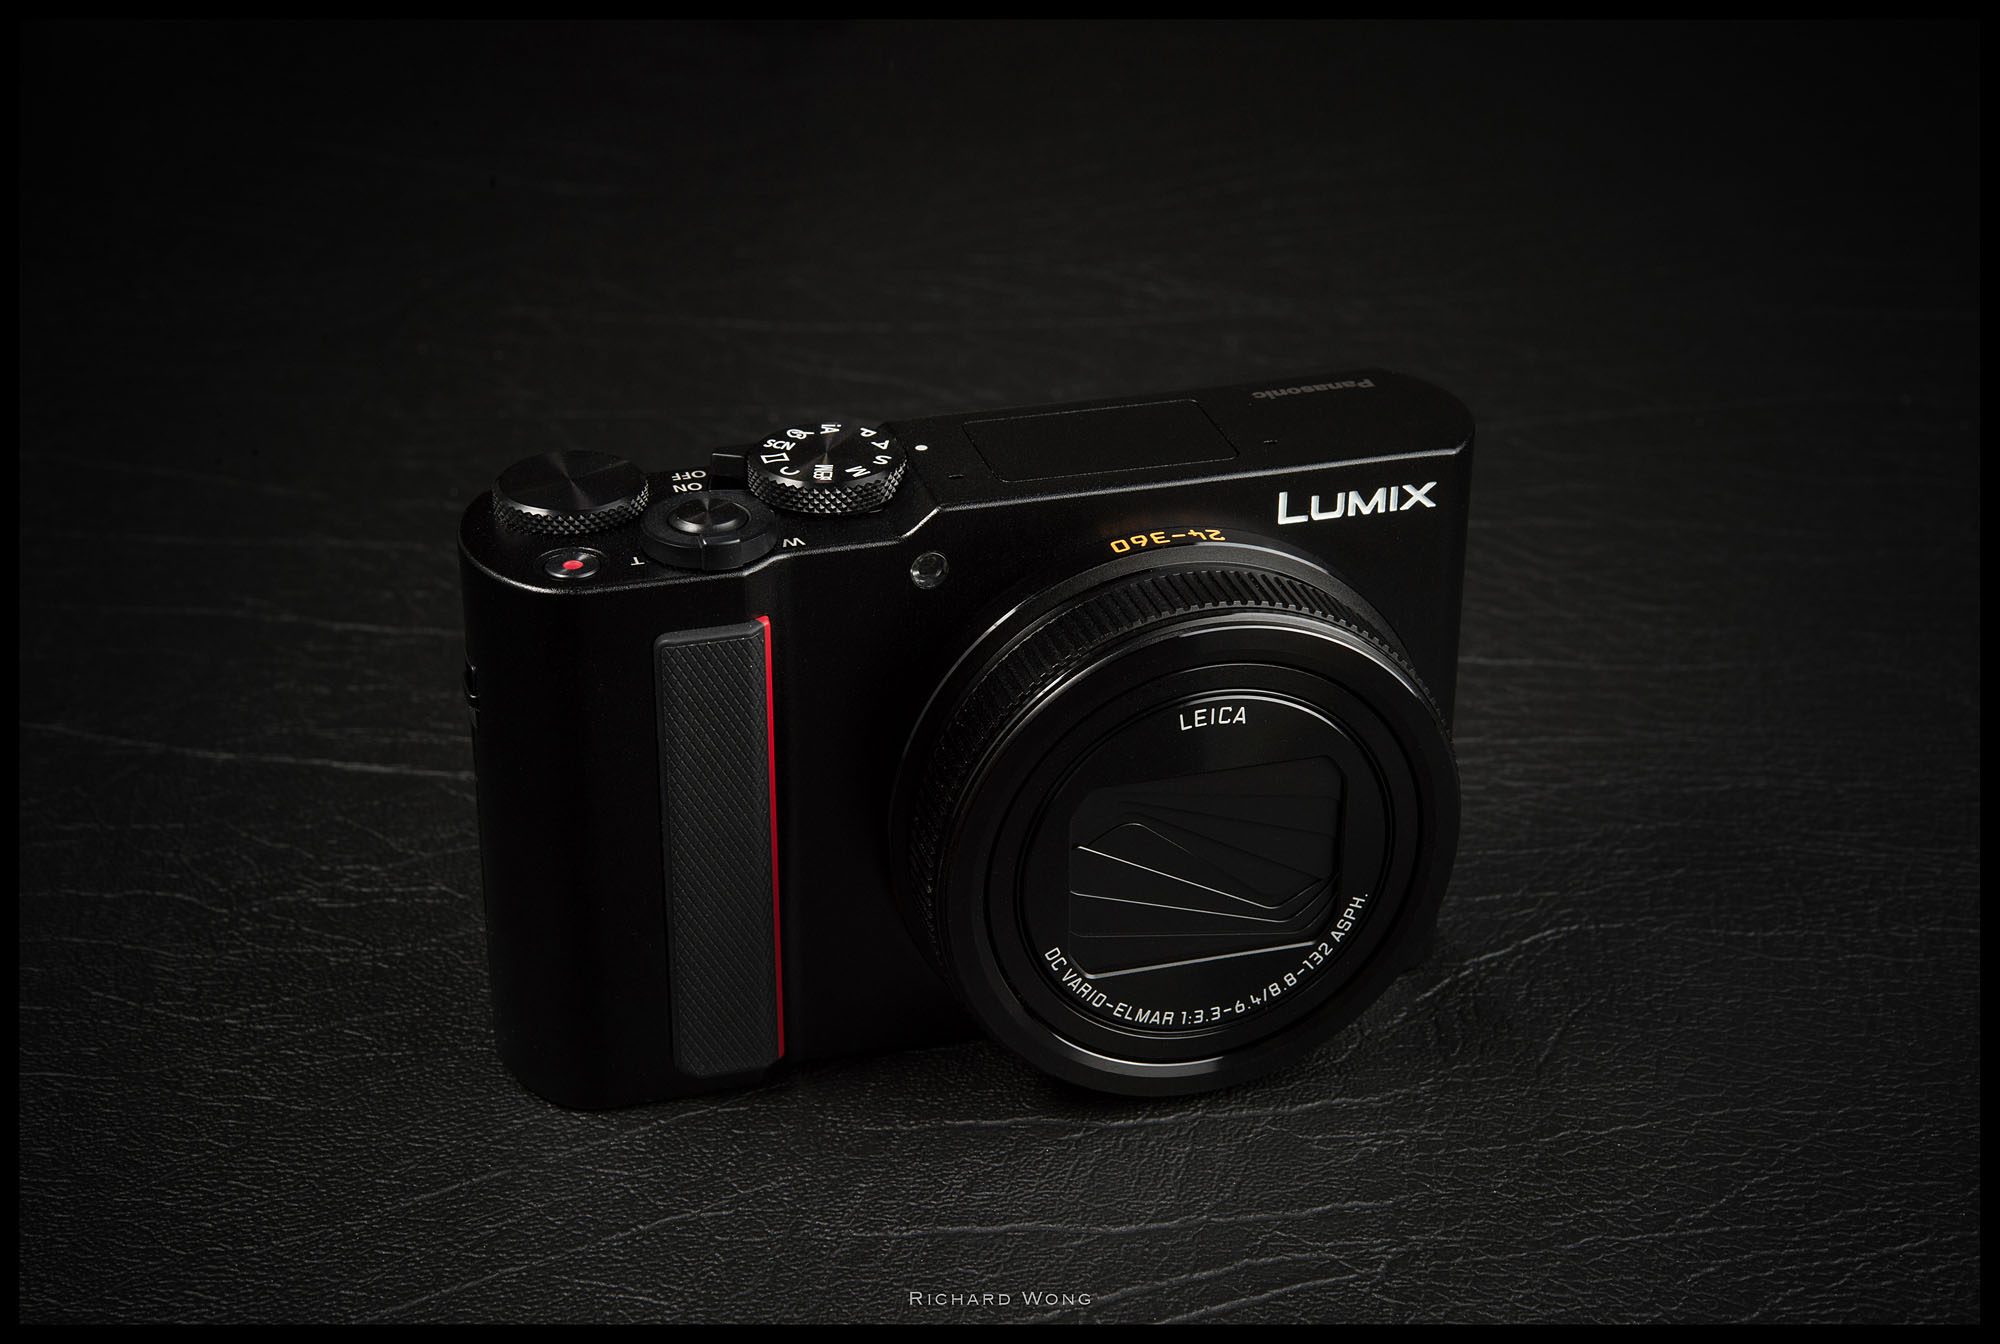 Panasonic Lumix Dc Tz220 Tz200 Zs200 Tx2 Leica C Lux Review Review By Richard